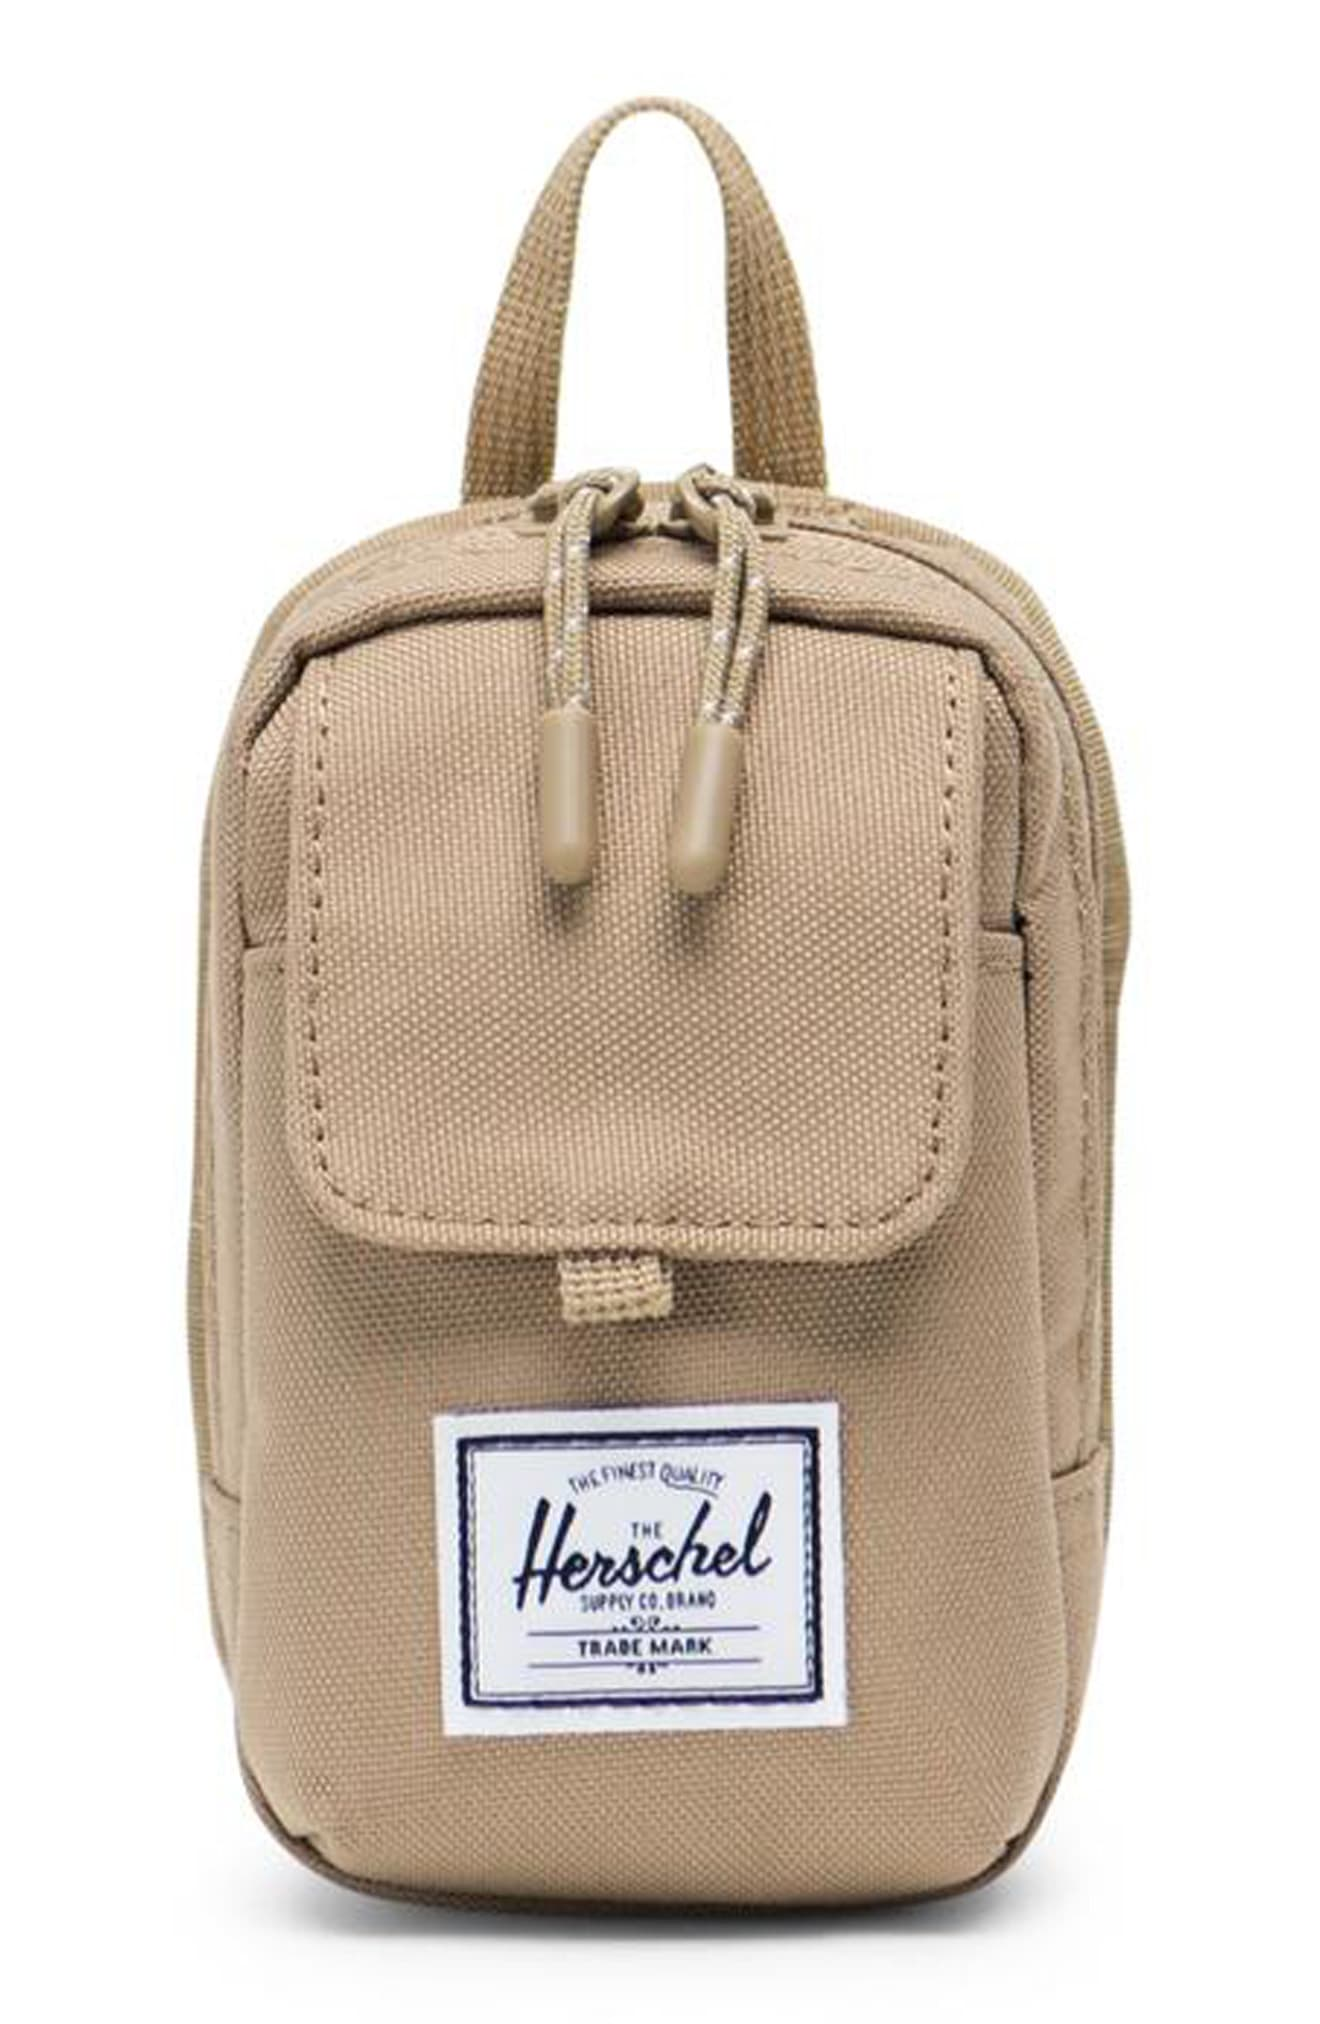 e229ee5af4ed Men's Herschel Supply Co. Small Form Shoulder Bag - Black in 2019 ...